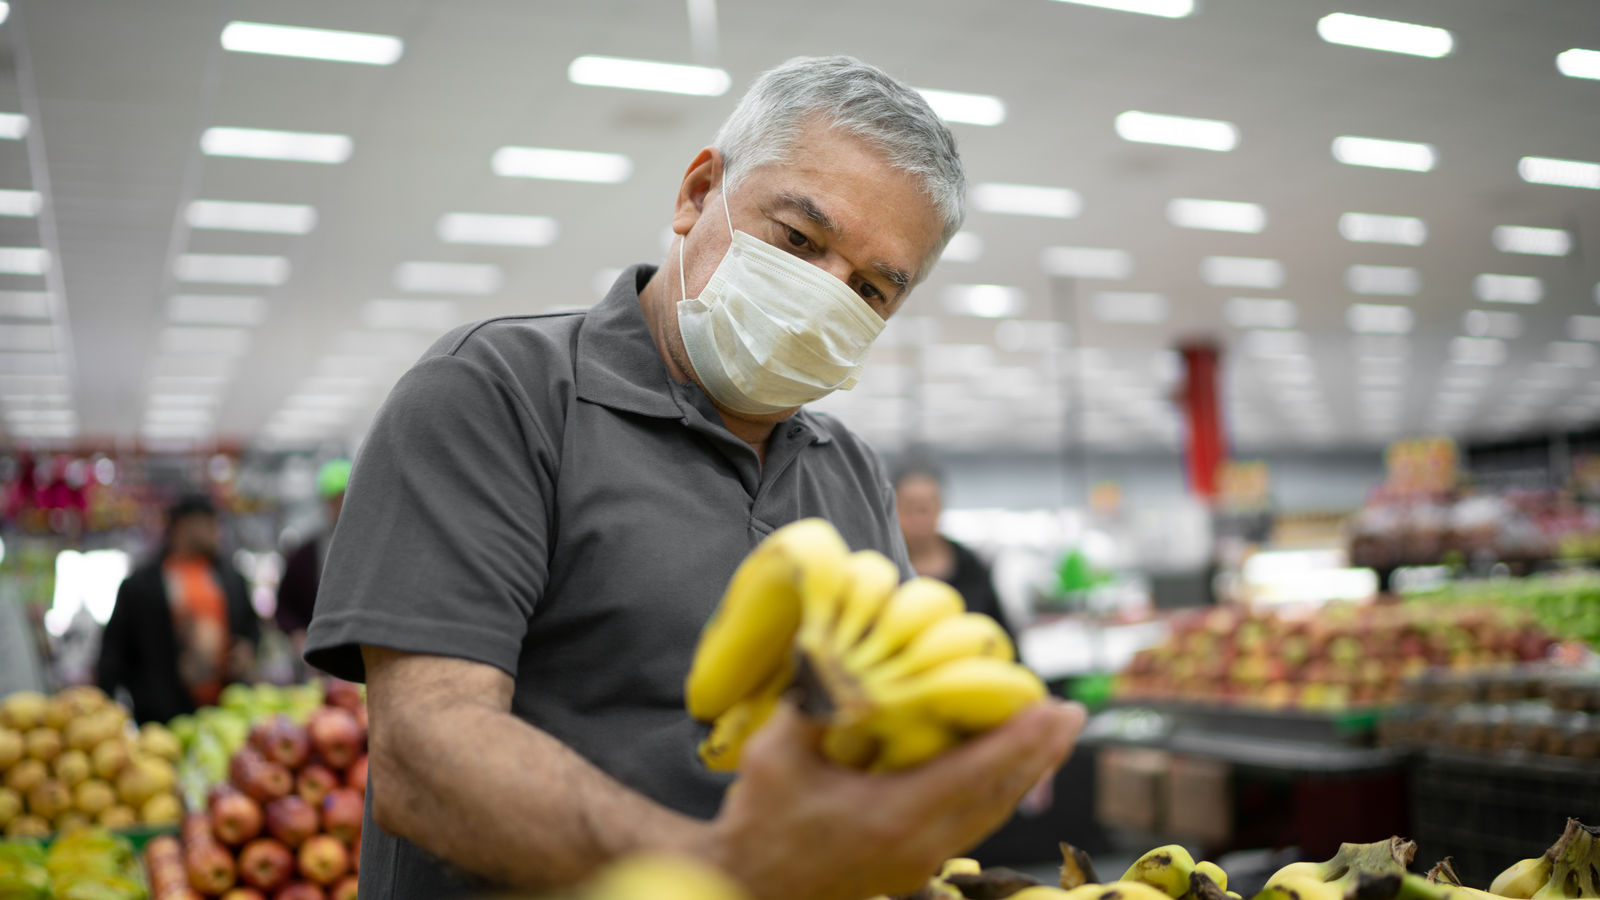 Shopper looking for healthy food in grocery store.